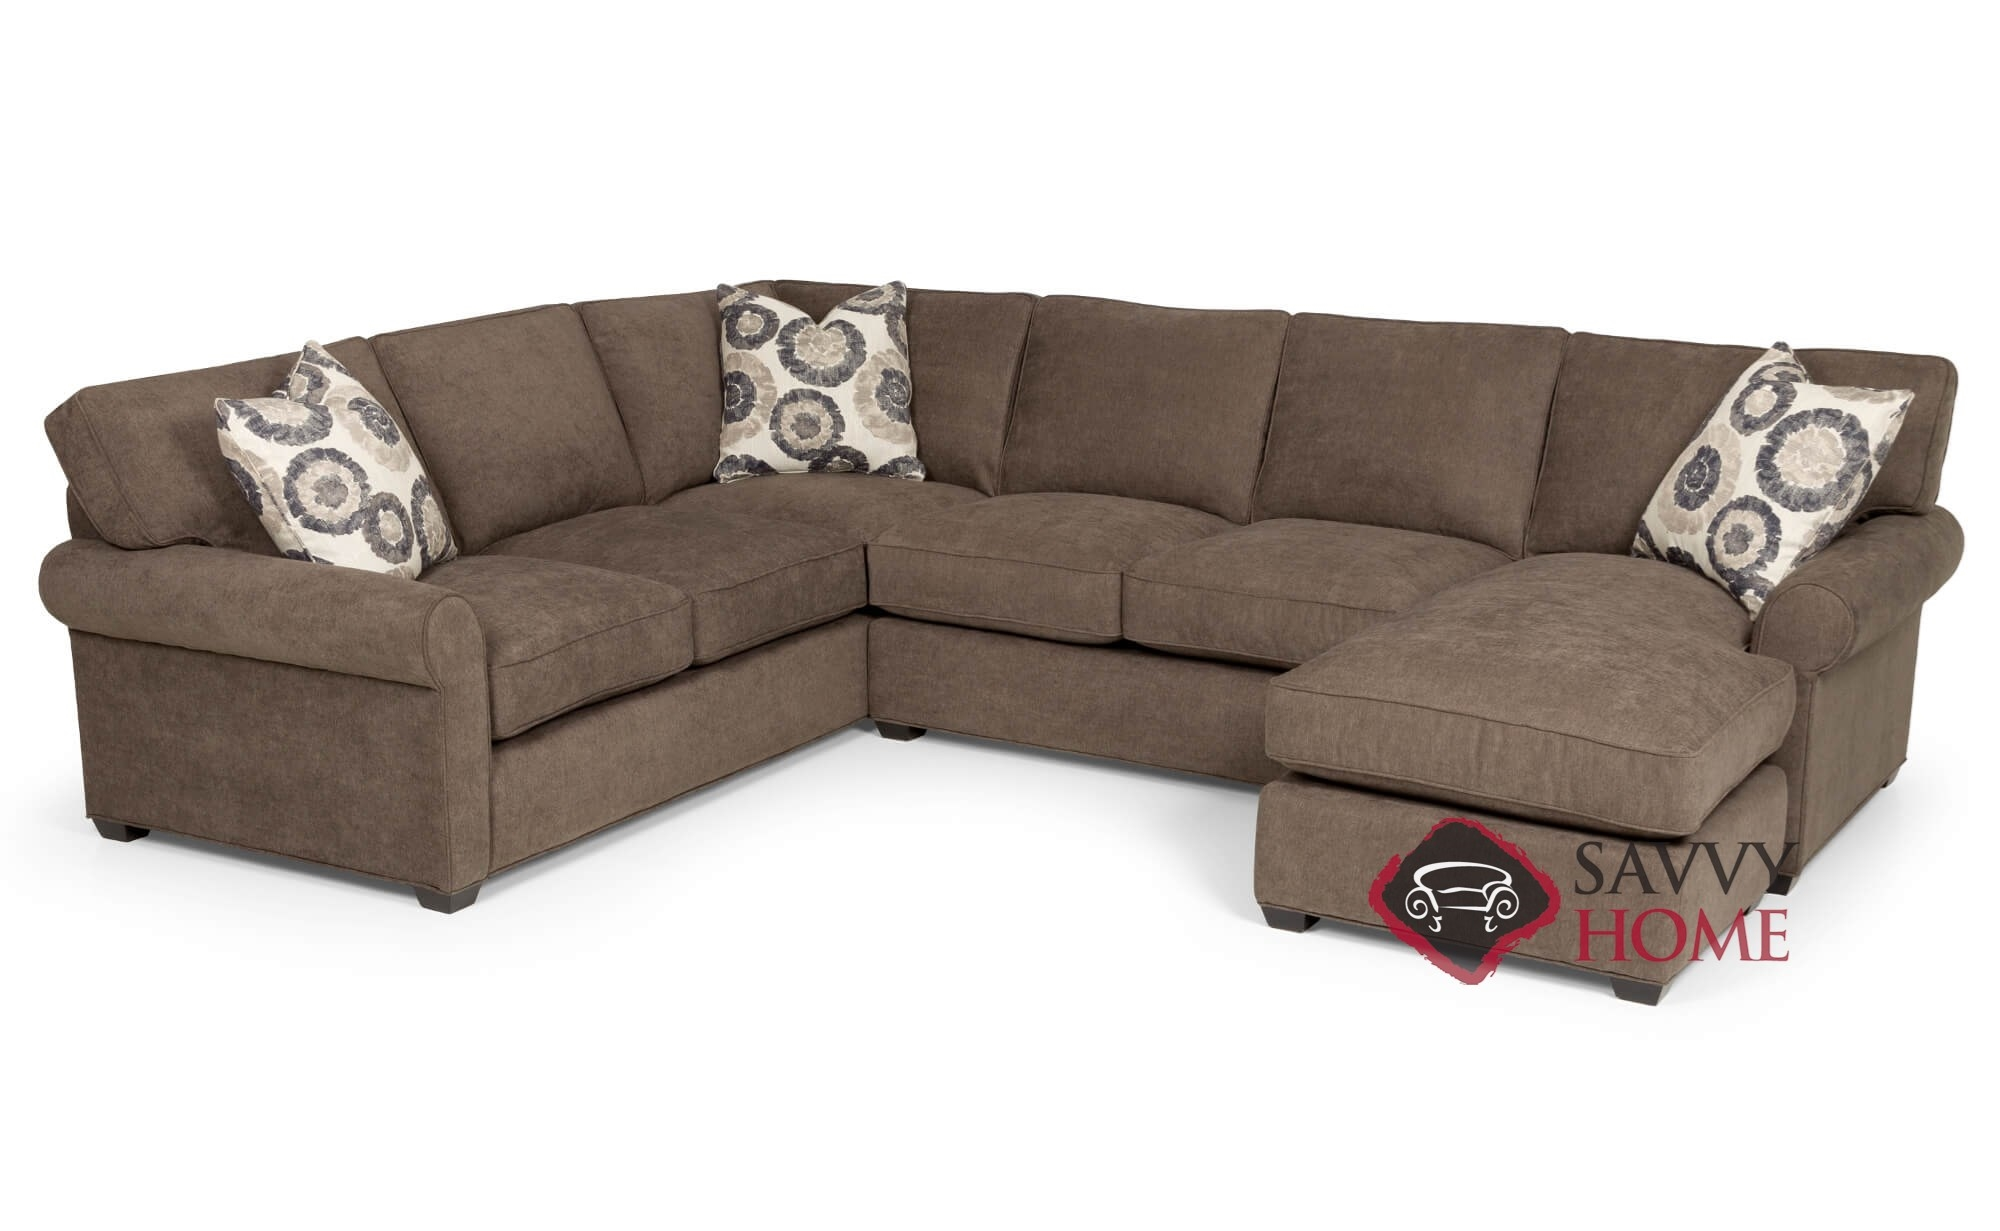 U Couch The 225 U Shape True Sectional Sofa By Stanton With Down Blend Cushions